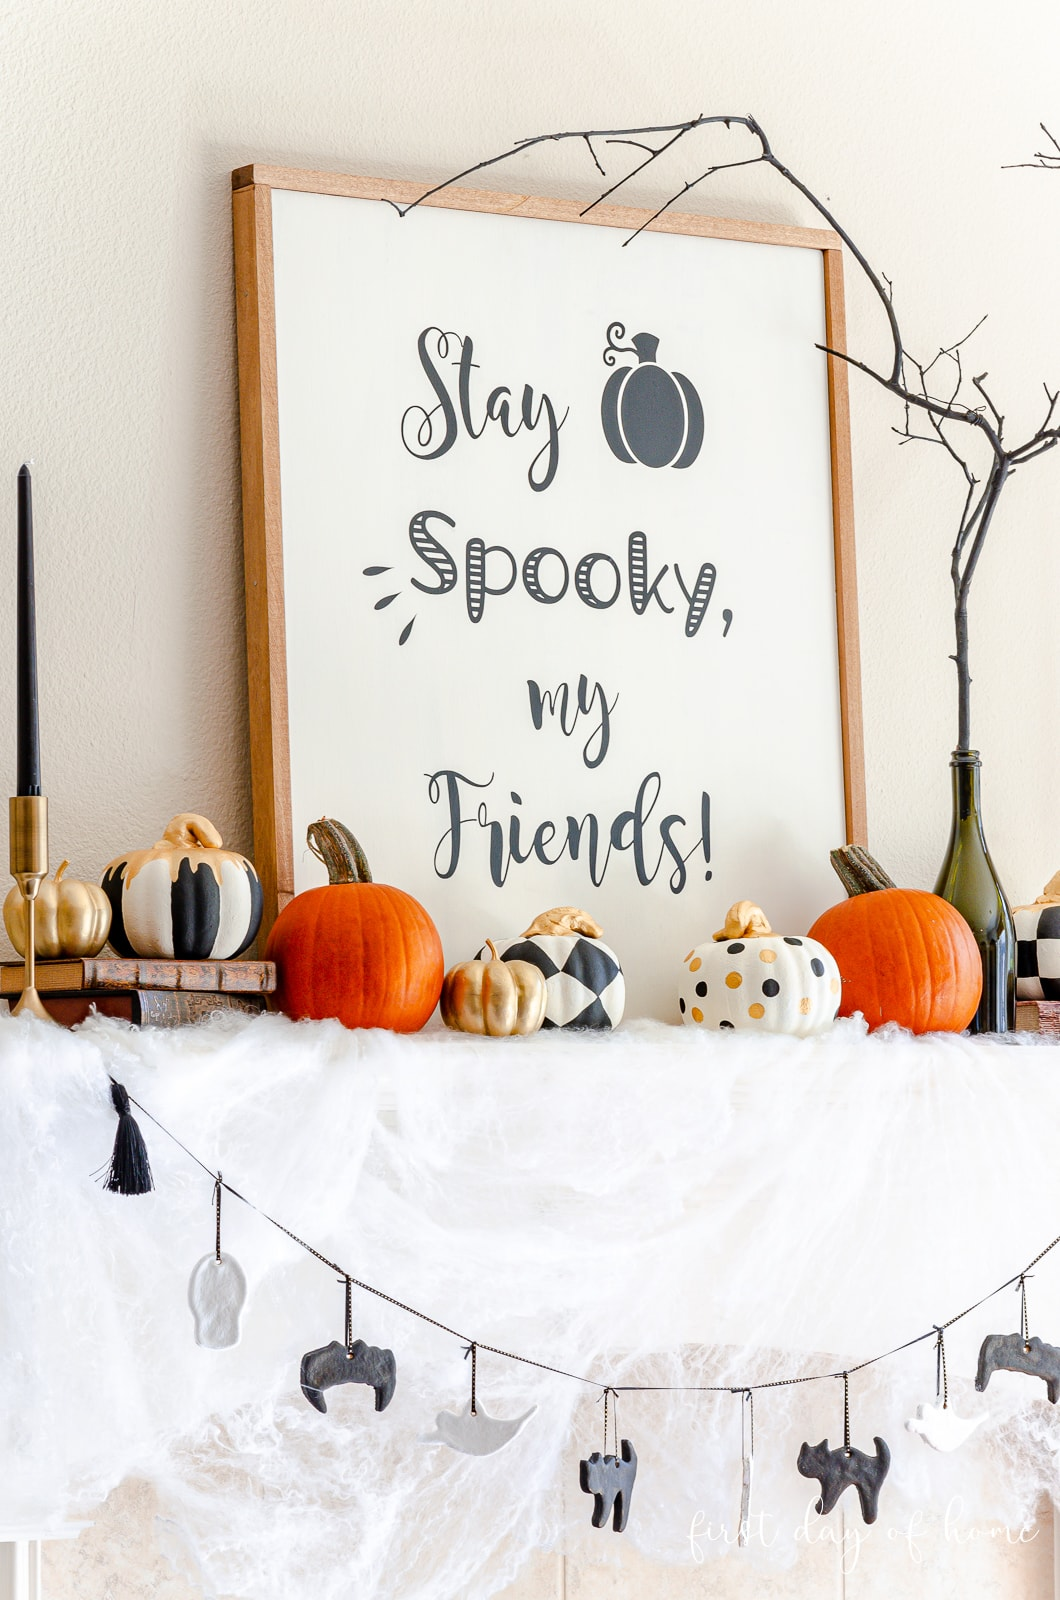 Halloween wood sign, painted dollar store pumpkins and salt dough ornaments on garland for Halloween mantel decor